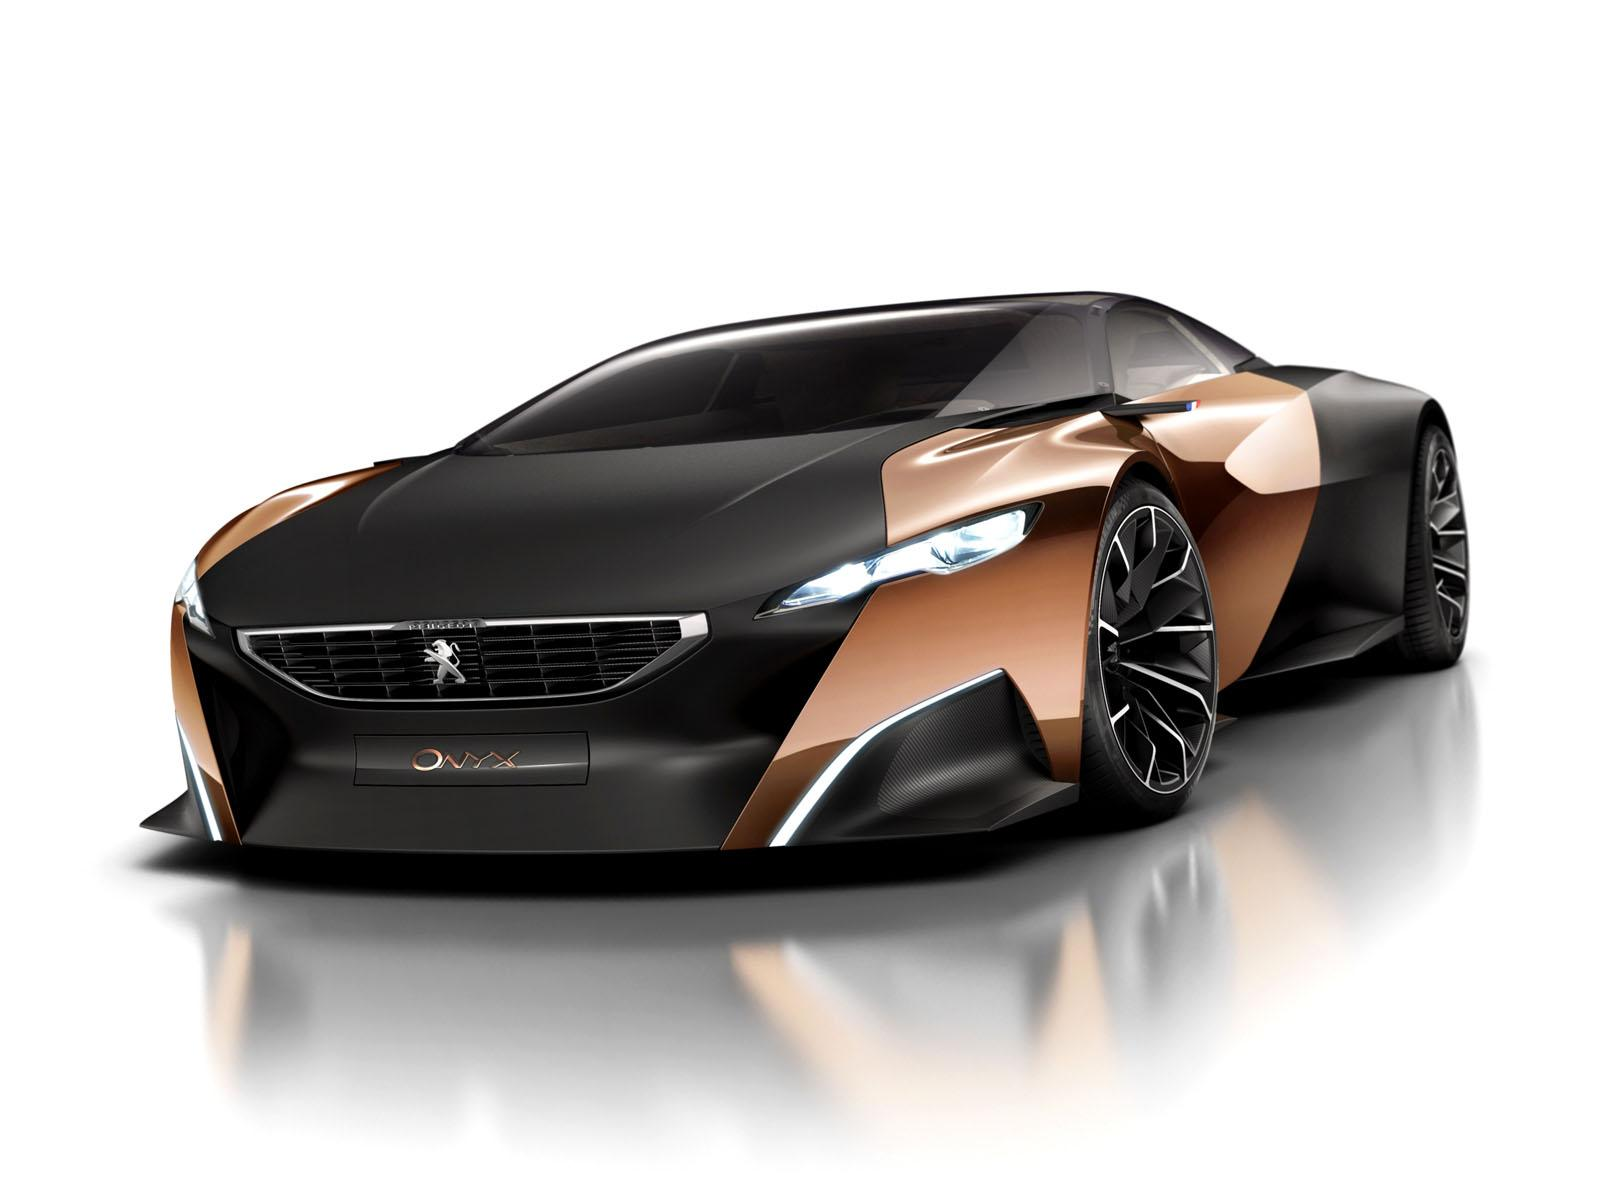 2013 Peugeot Onyx Concept The leaked pictures of the 2013 Peugeot Onyx Concept give us an insight into the model